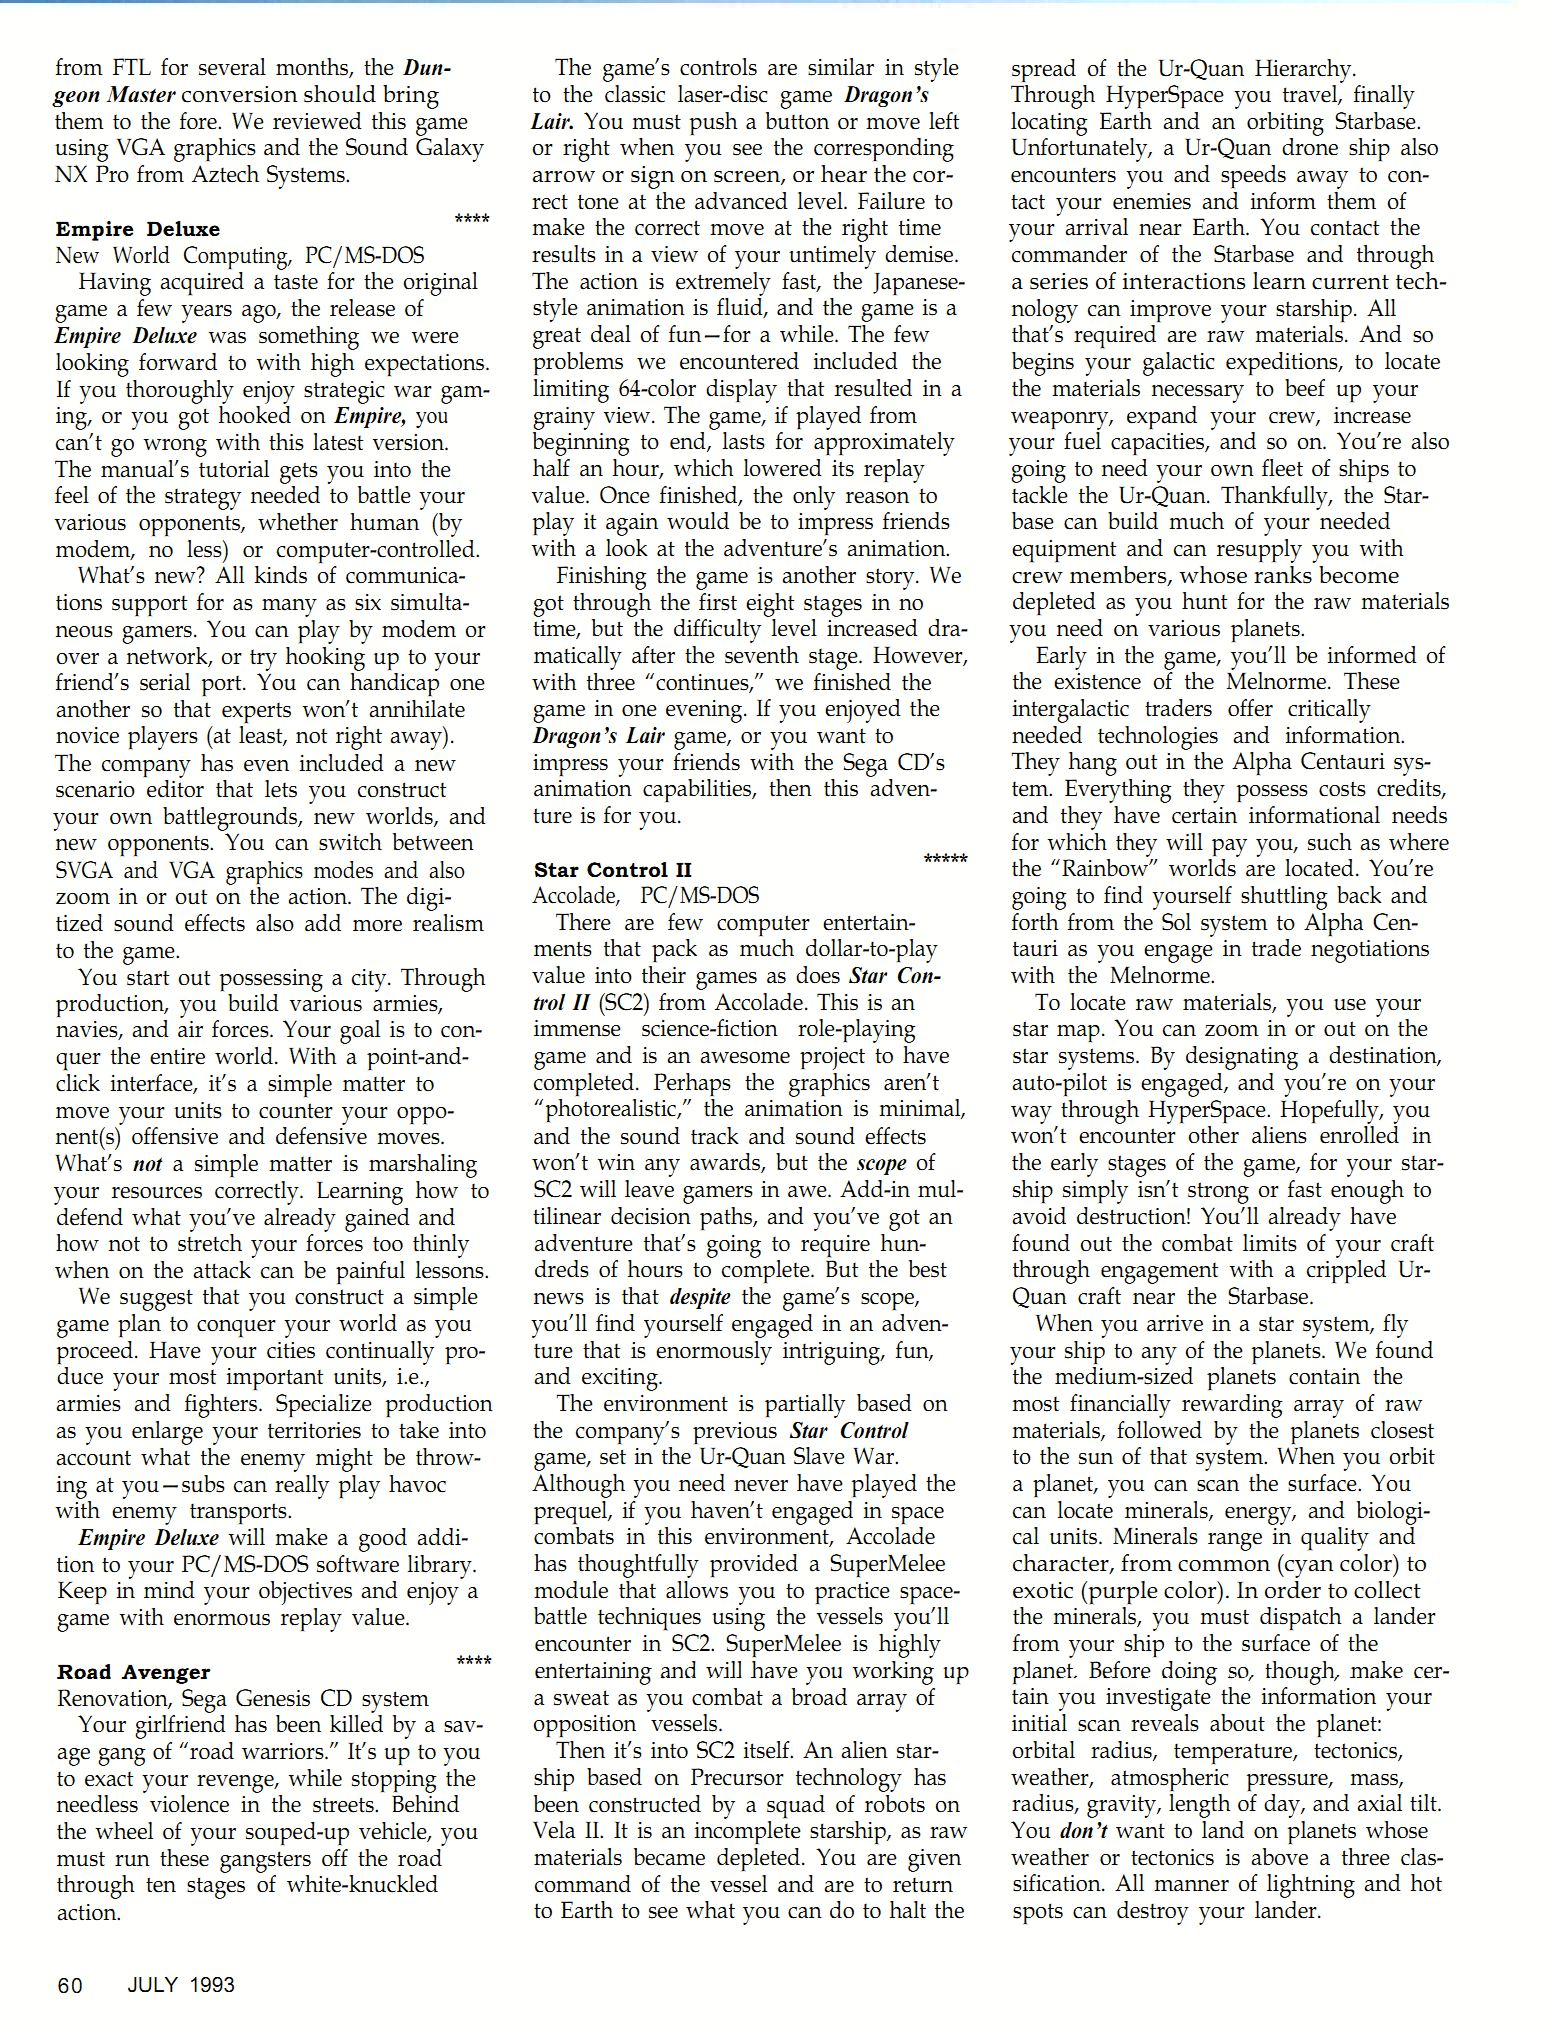 Dungeon Master for PC Review published in British-American magazine 'Dragon Magazine', Issue #195 Vol XVIII No 2 July 1993, Page 60